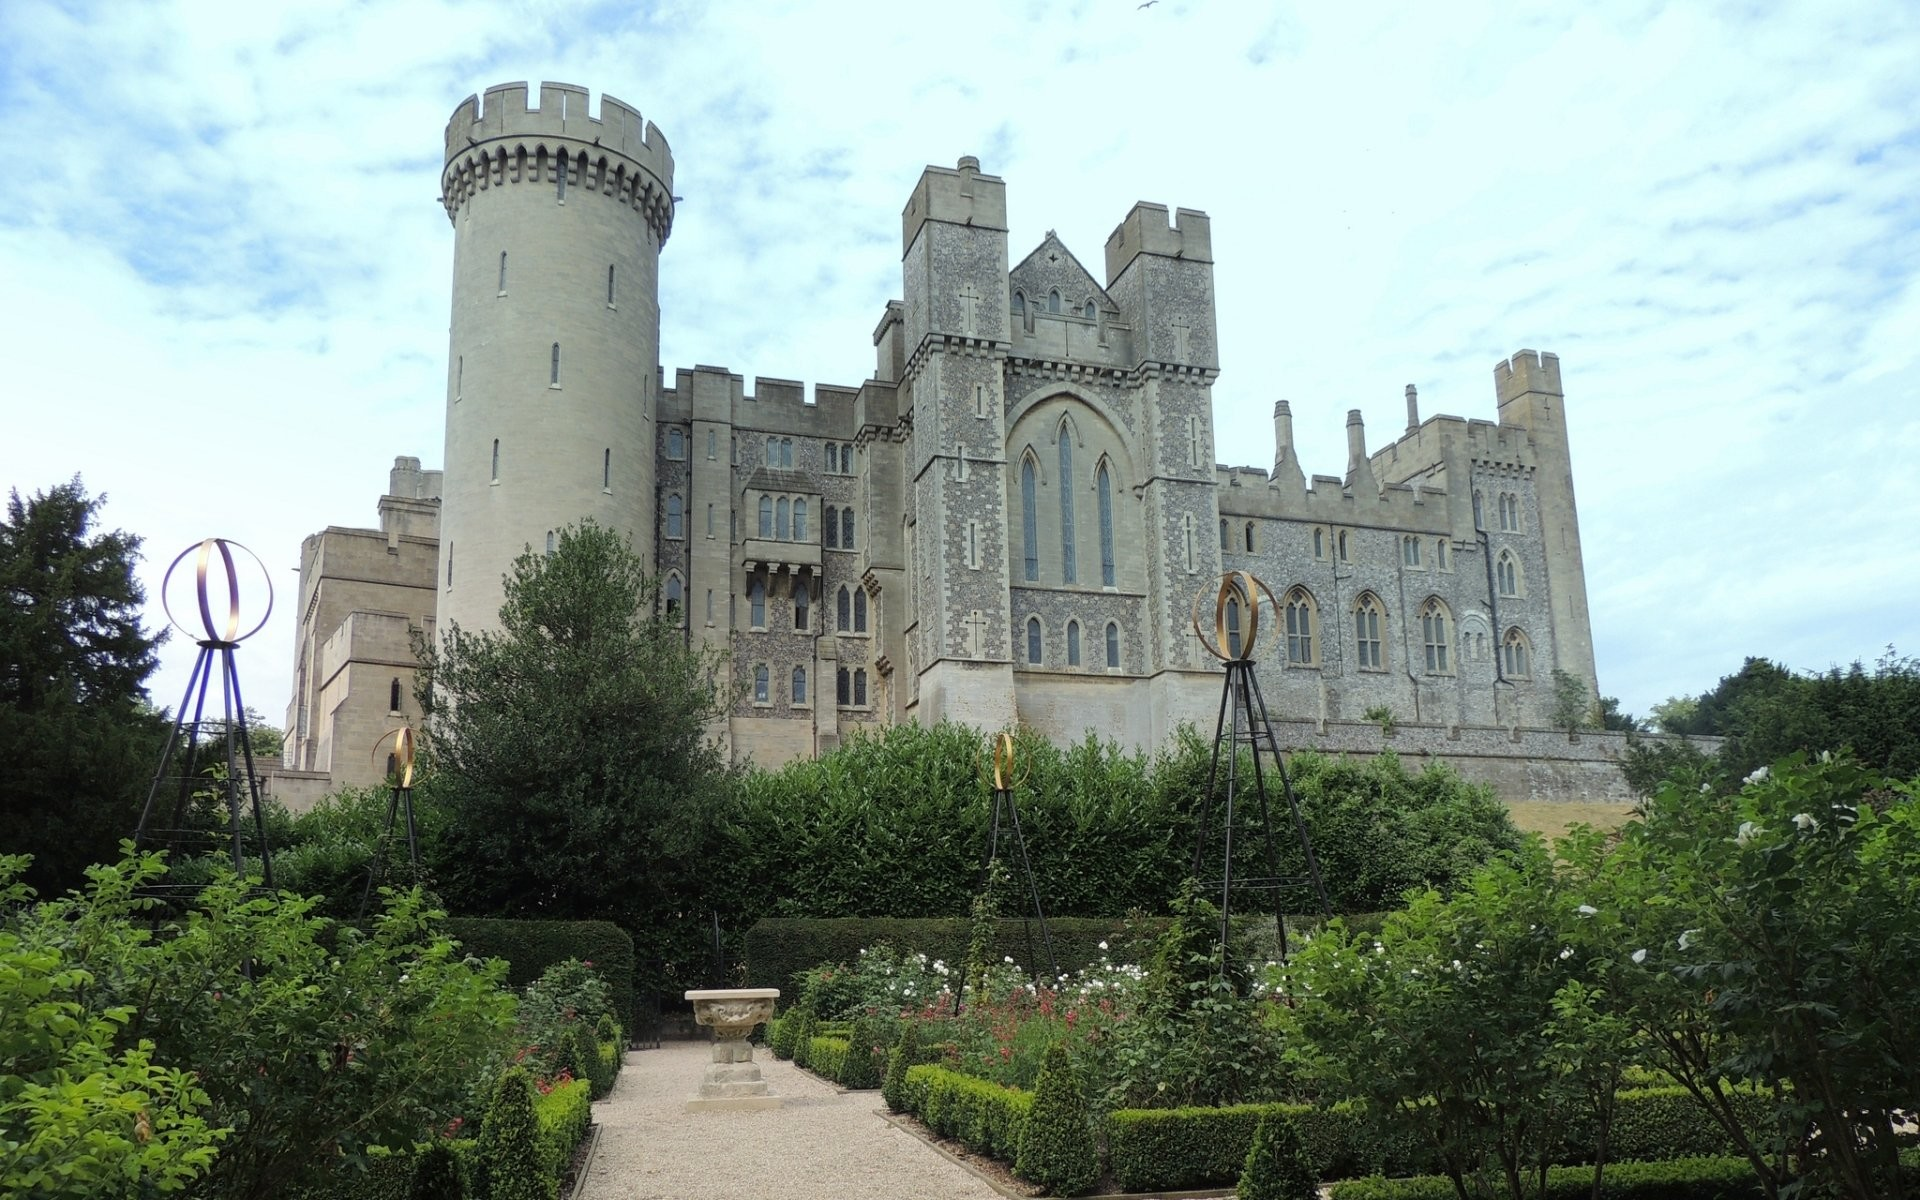 Explore More Wallpapers in the Arundel Castle Subcategory!